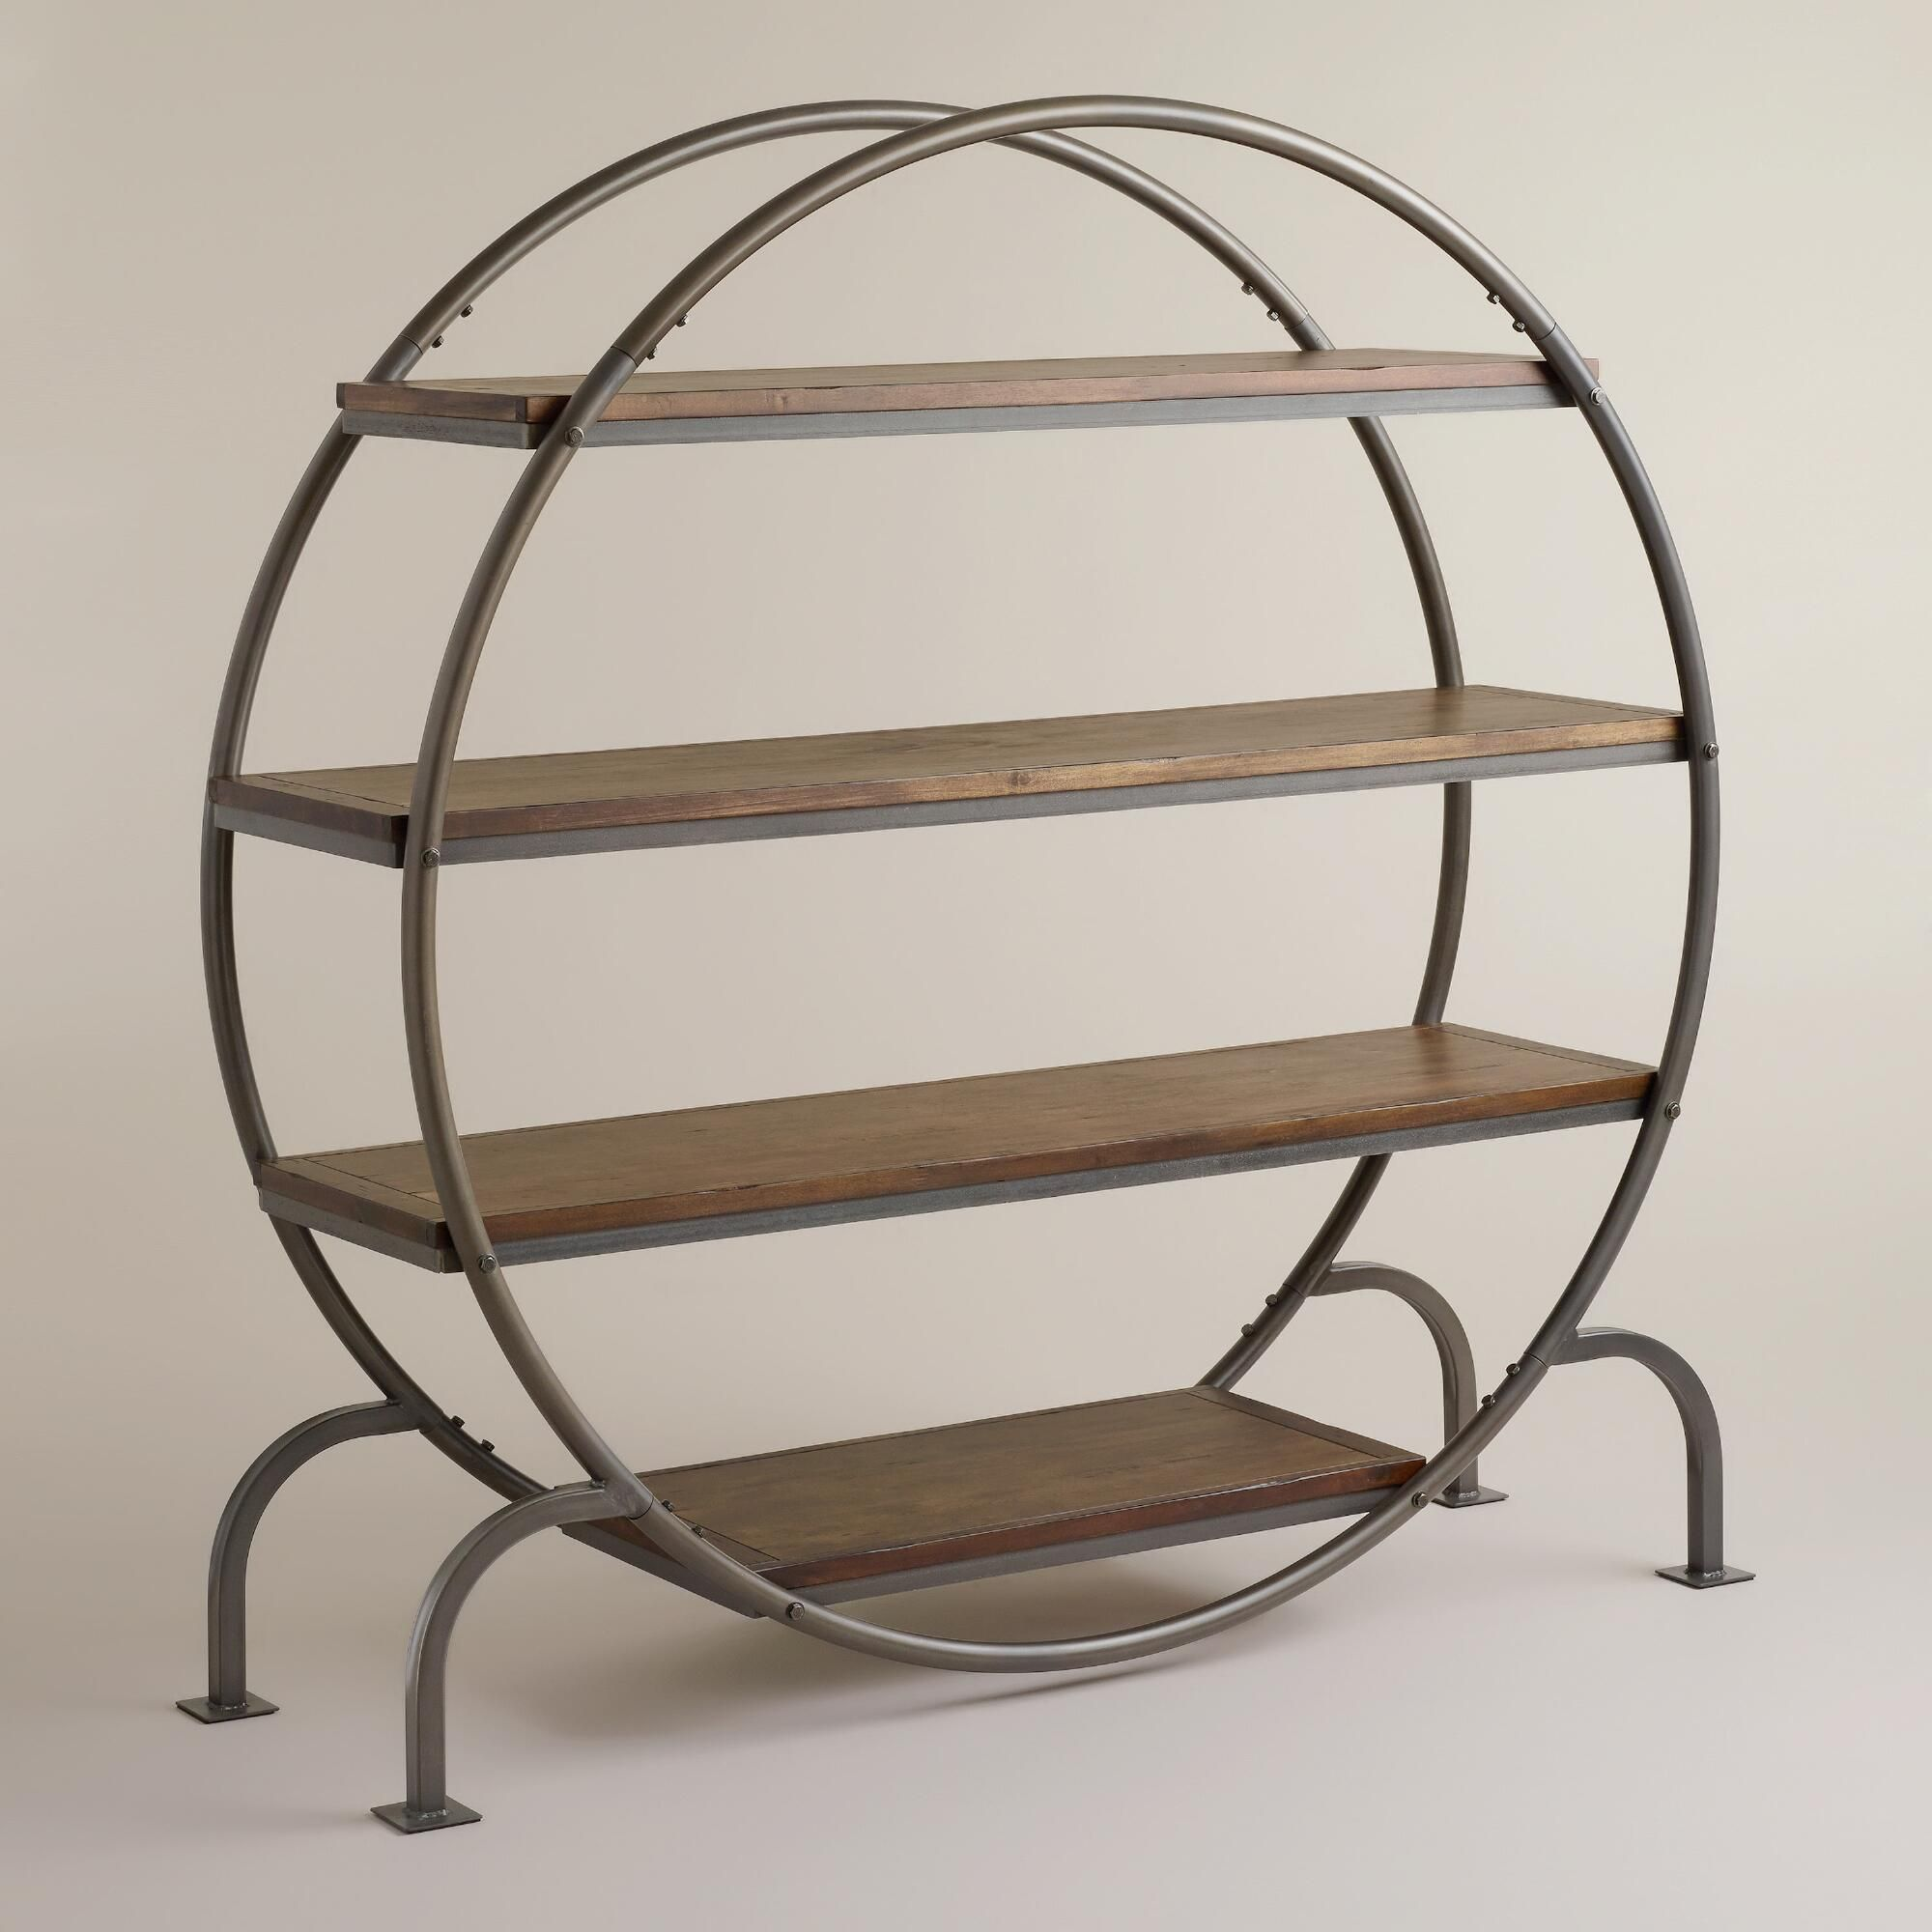 Design Circle Bookshelf round bookcase rounding industrial and spaces our ultra stylish is brimming with sophistication thanks to its metal frame